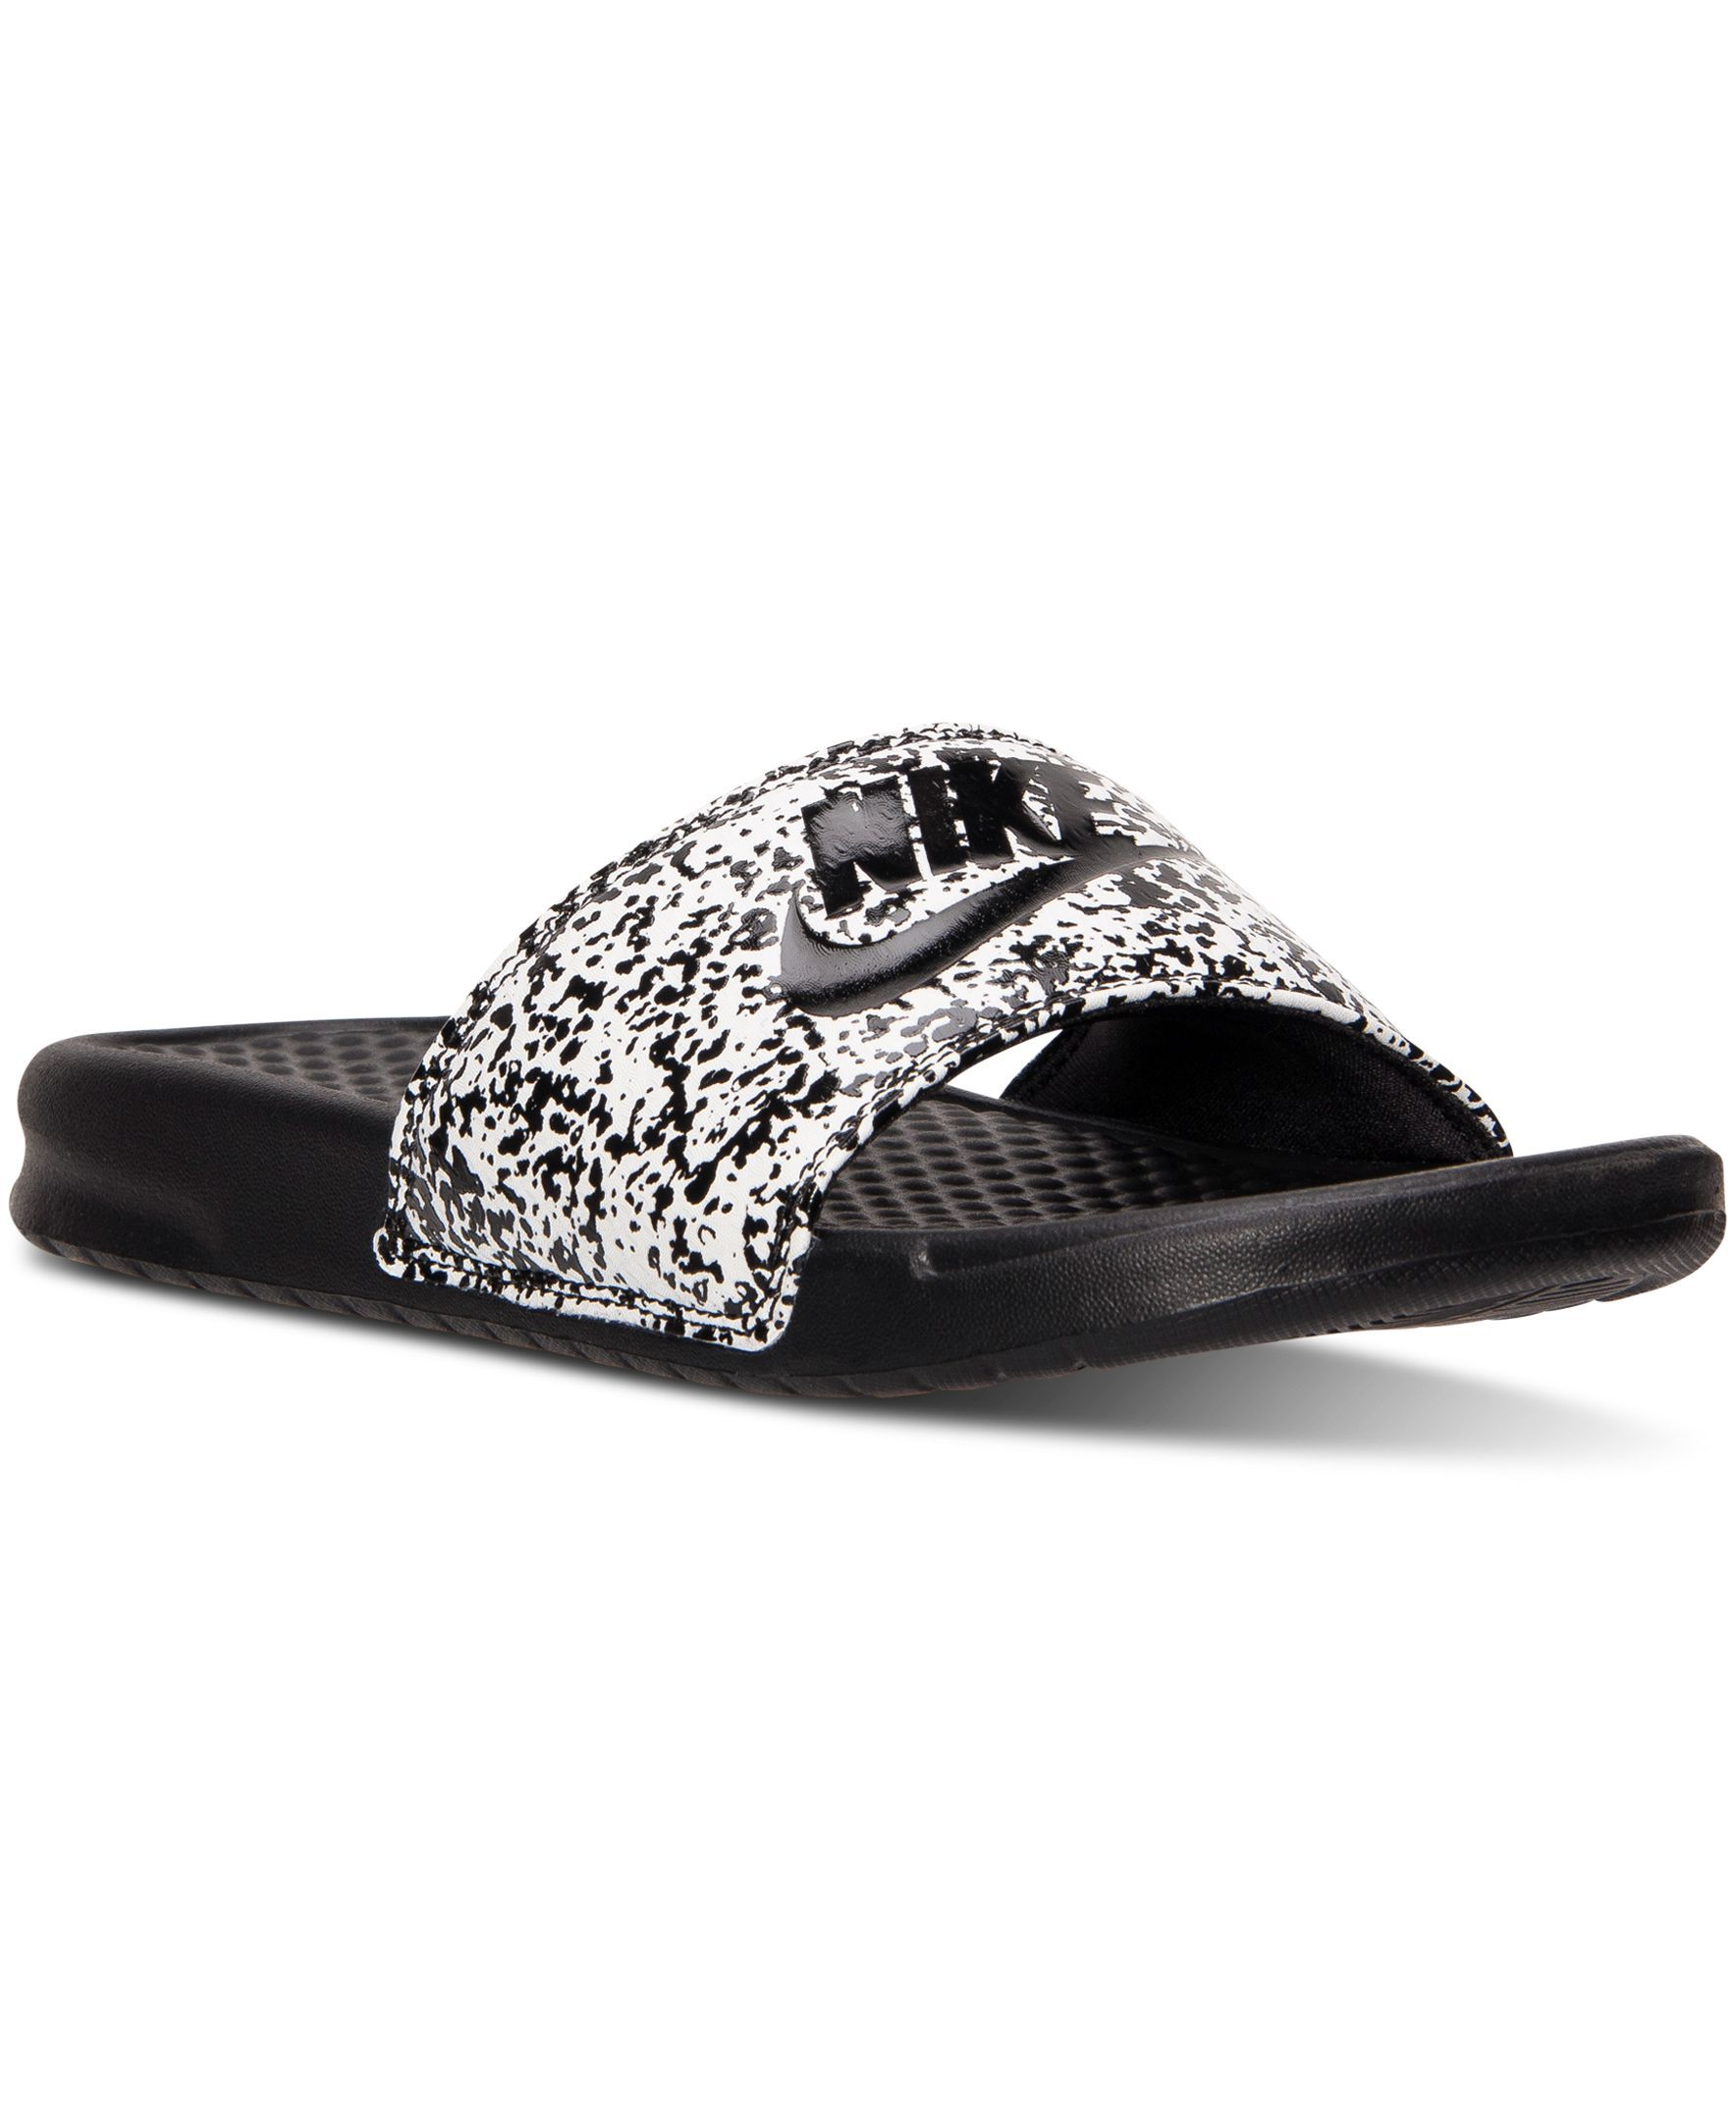 1d462e056ea7 Nike Men s Benassi Jdi Print Slide Sandals from Finish Line